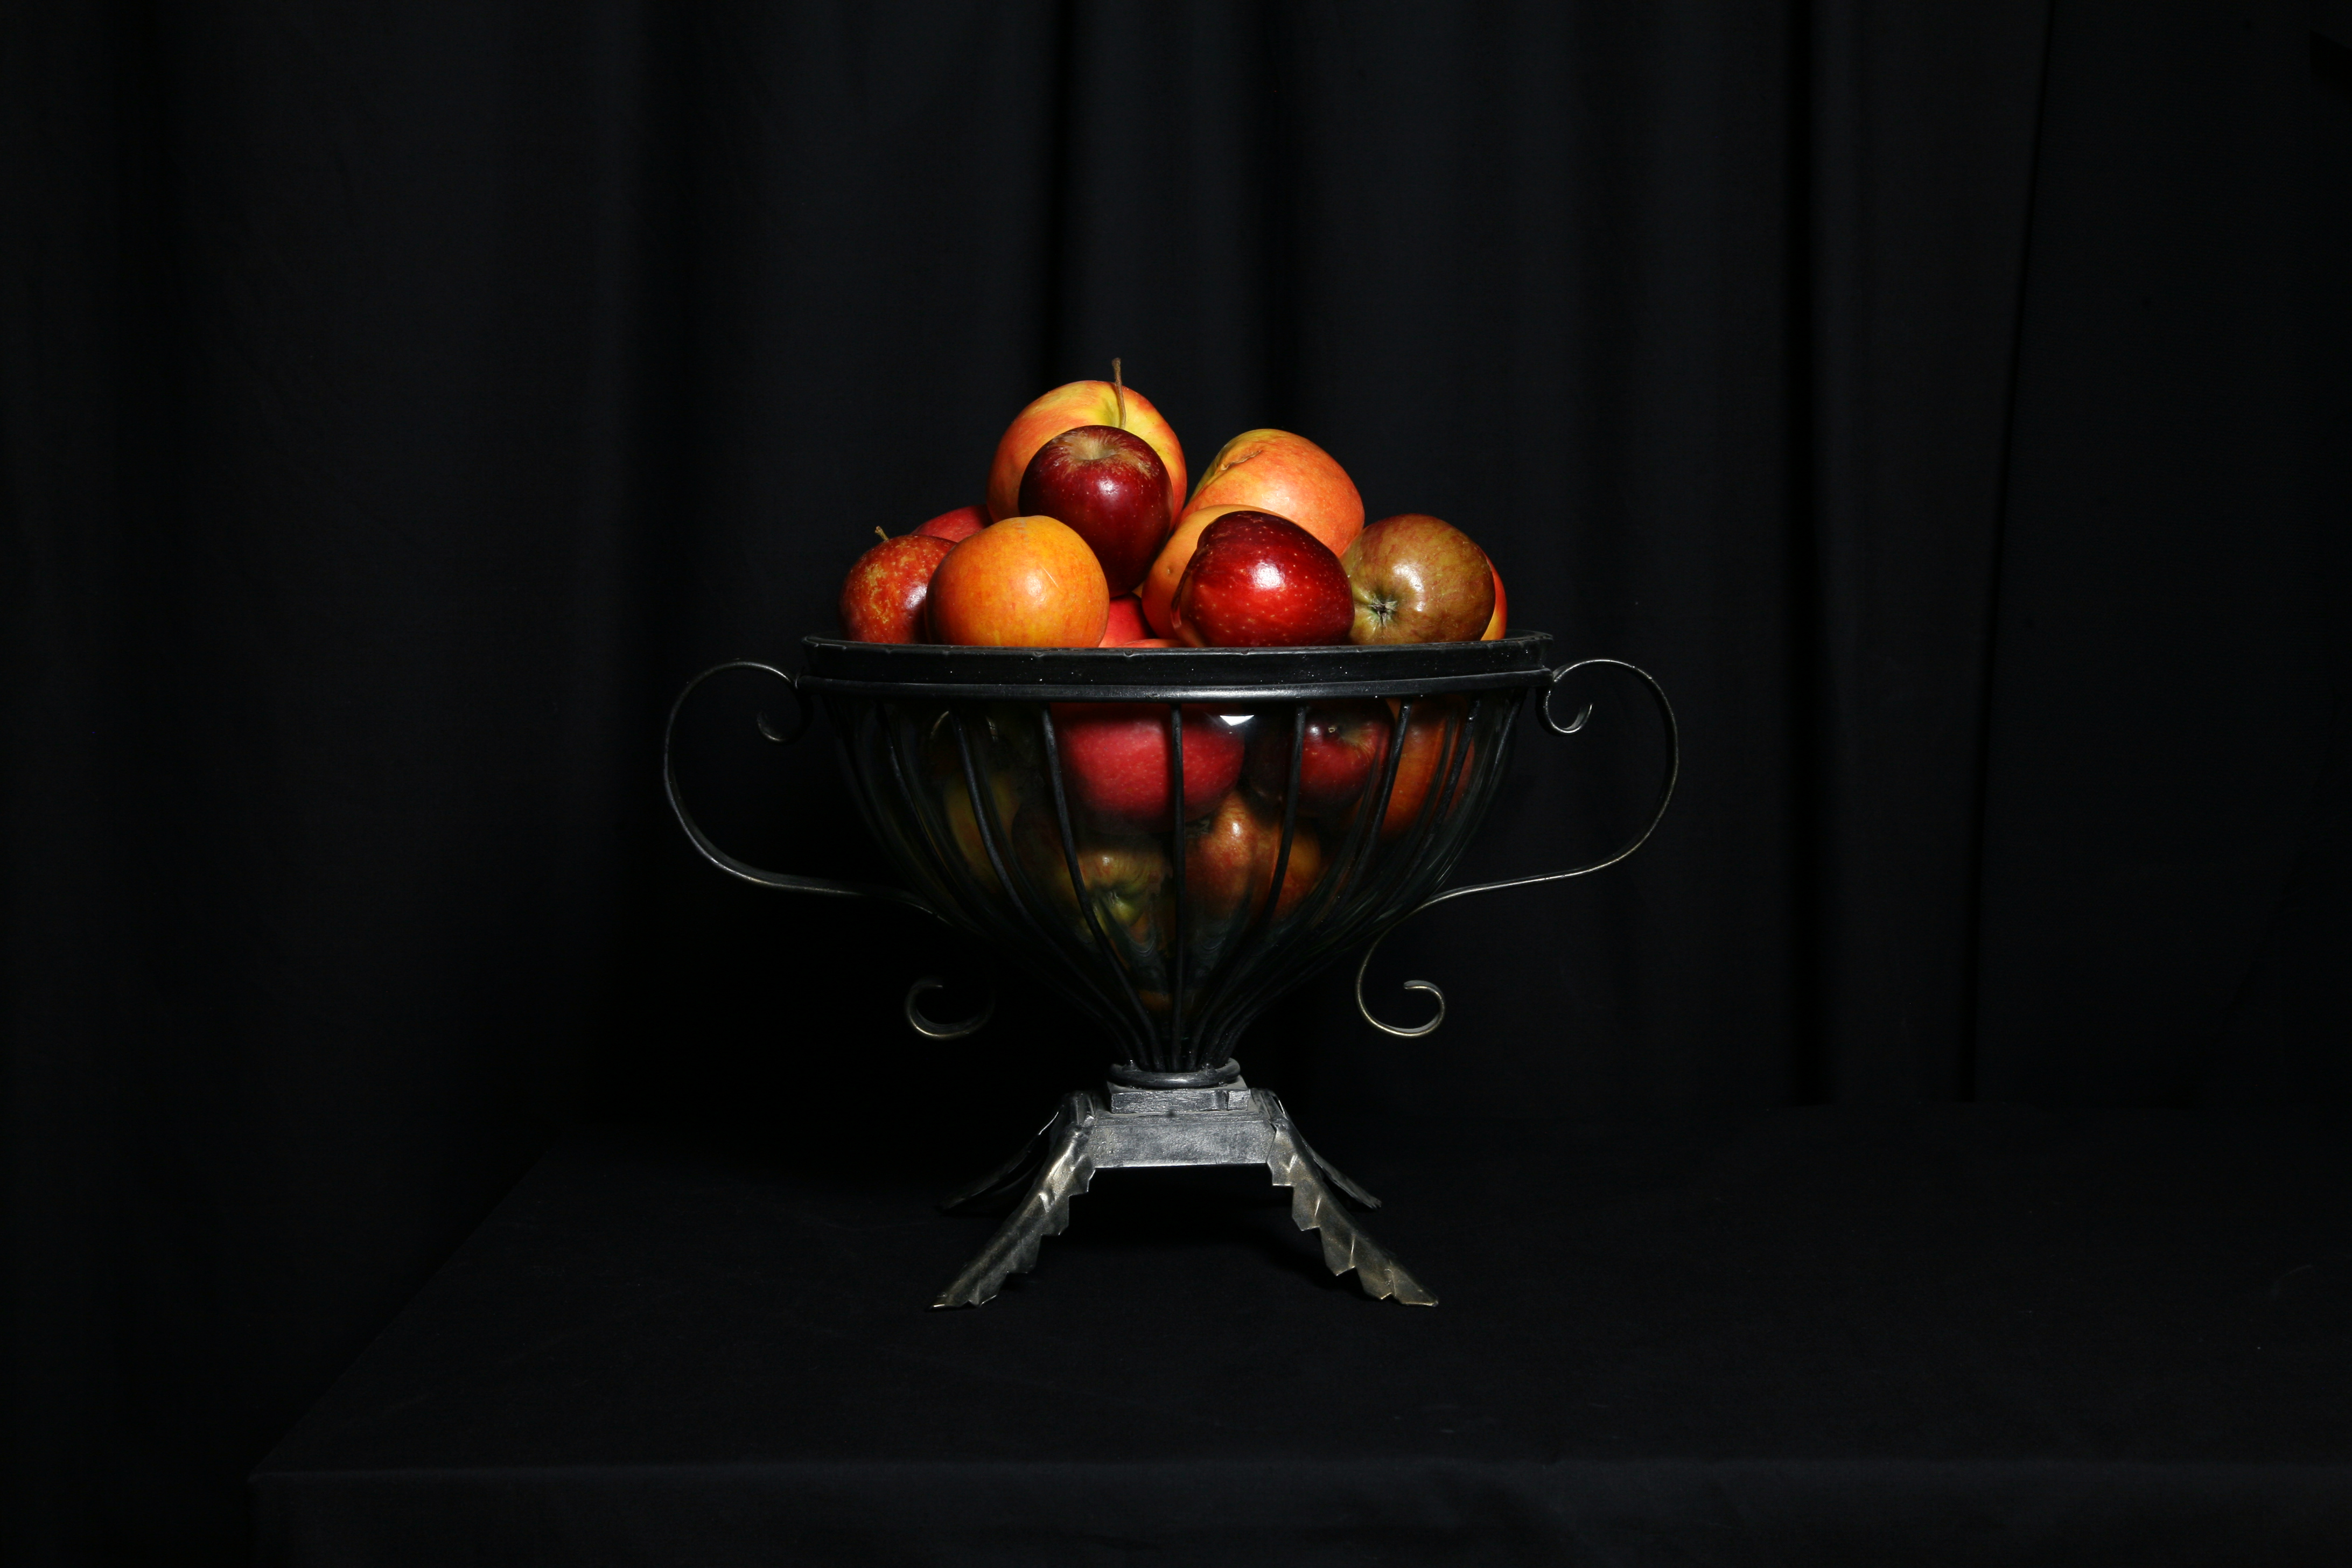 Still Life With Apples but No Orange